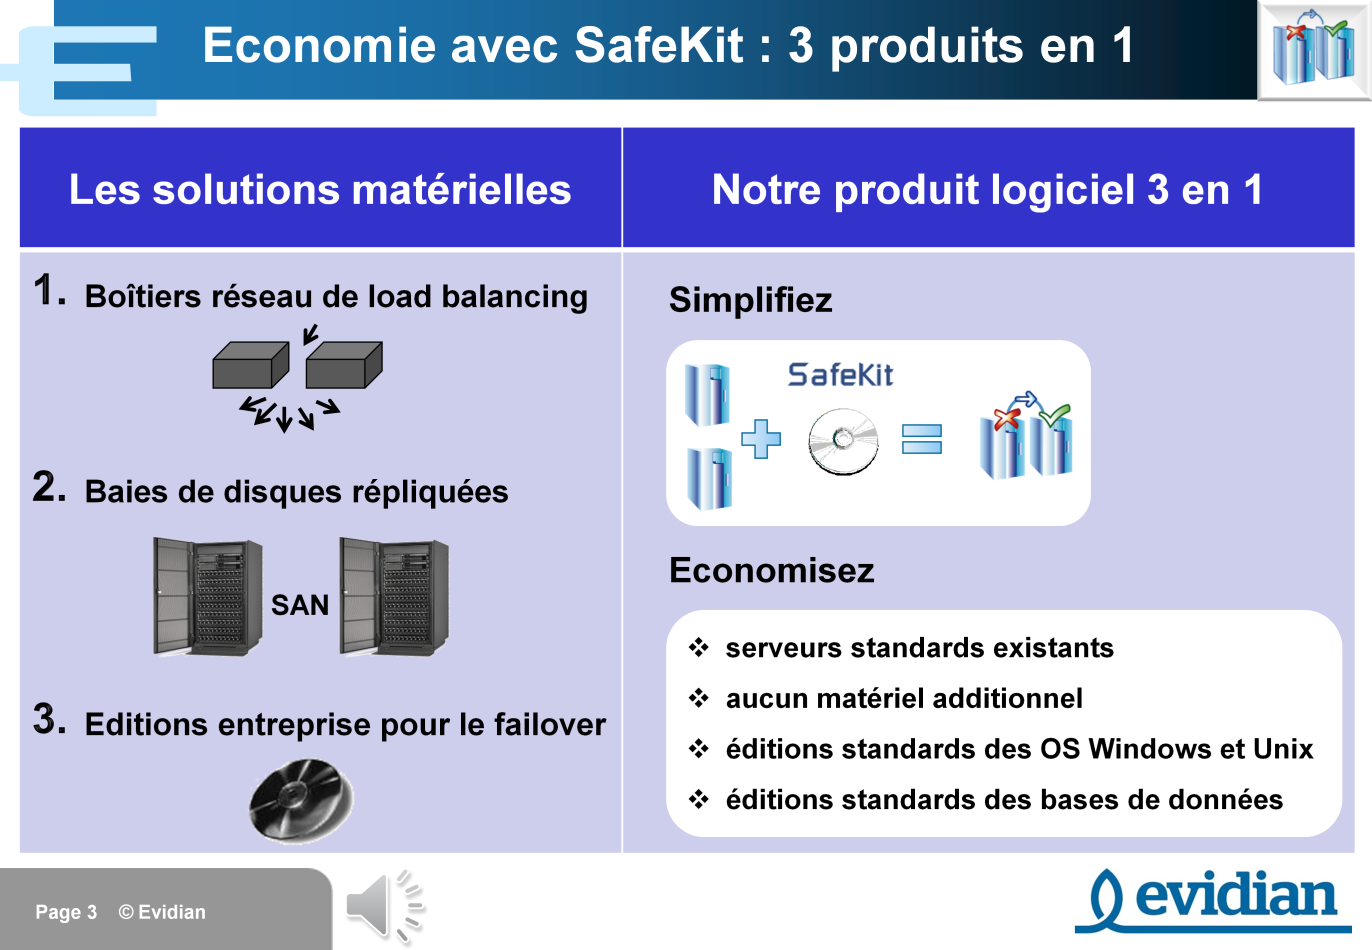 Transitions / Advance Slide / After 02:16 => pour un passage automatique au slide suivant Je vais maintenant vous présenter l économie réalisée avec SafeKit qui intègre 3 produits de clustering dans